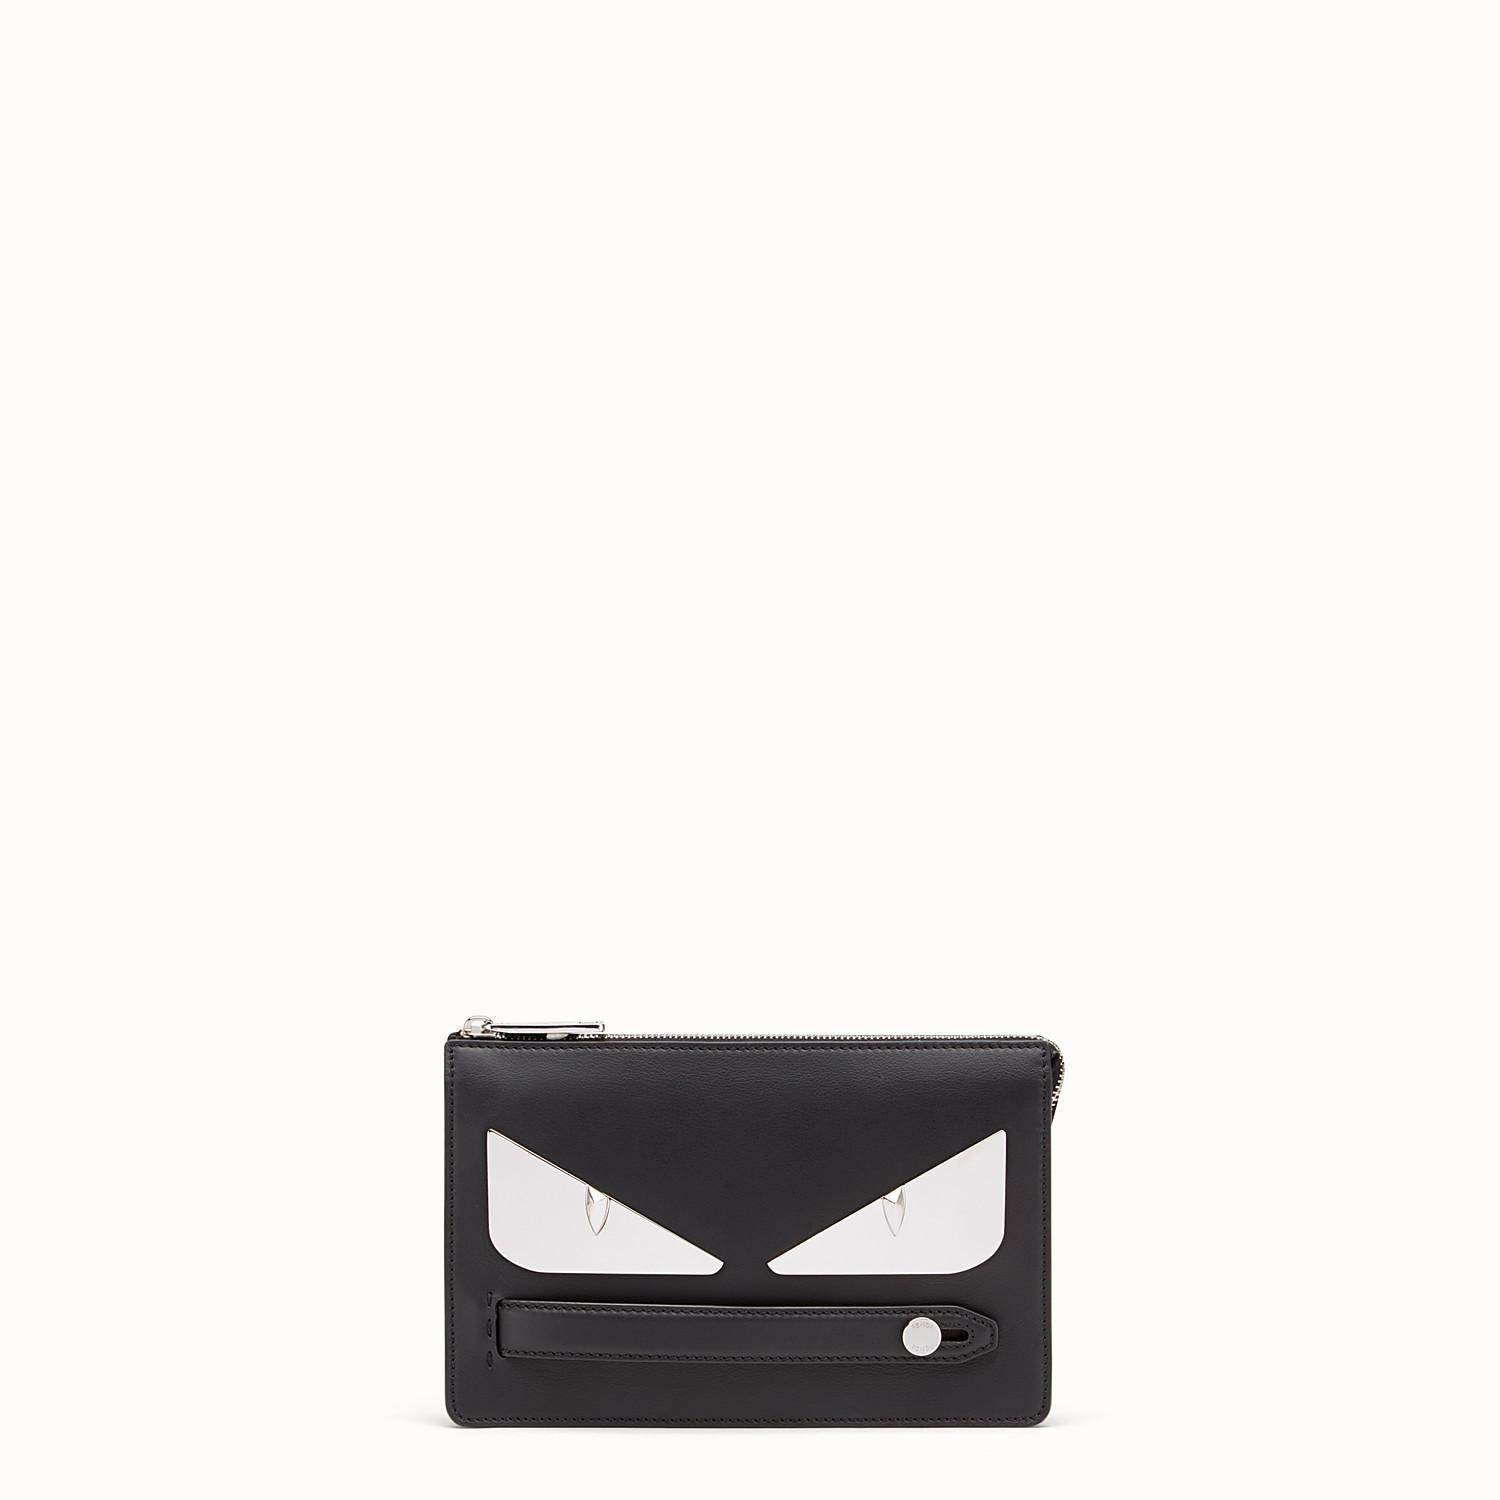 8250bb460fd Lyst - Fendi Clutch Clutch in Black for Men - Save 26%